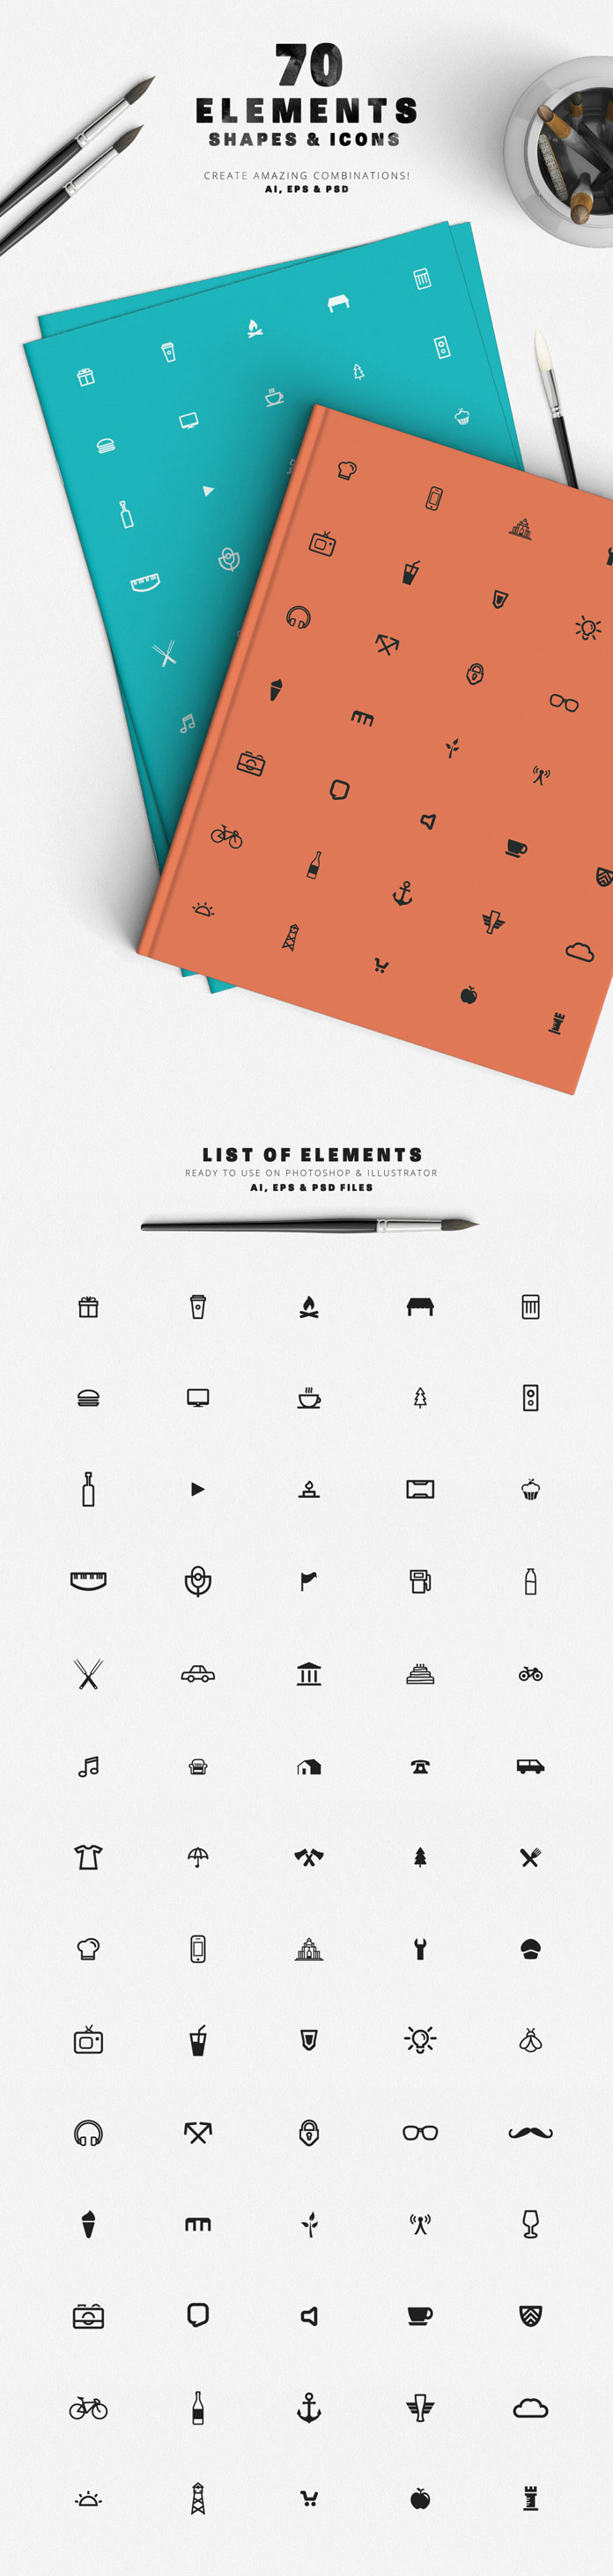 The included premium edition of DesignDistrict's logo creator consists of 70 vector elements of shapes and icons as AI, EPS, and PSD files.